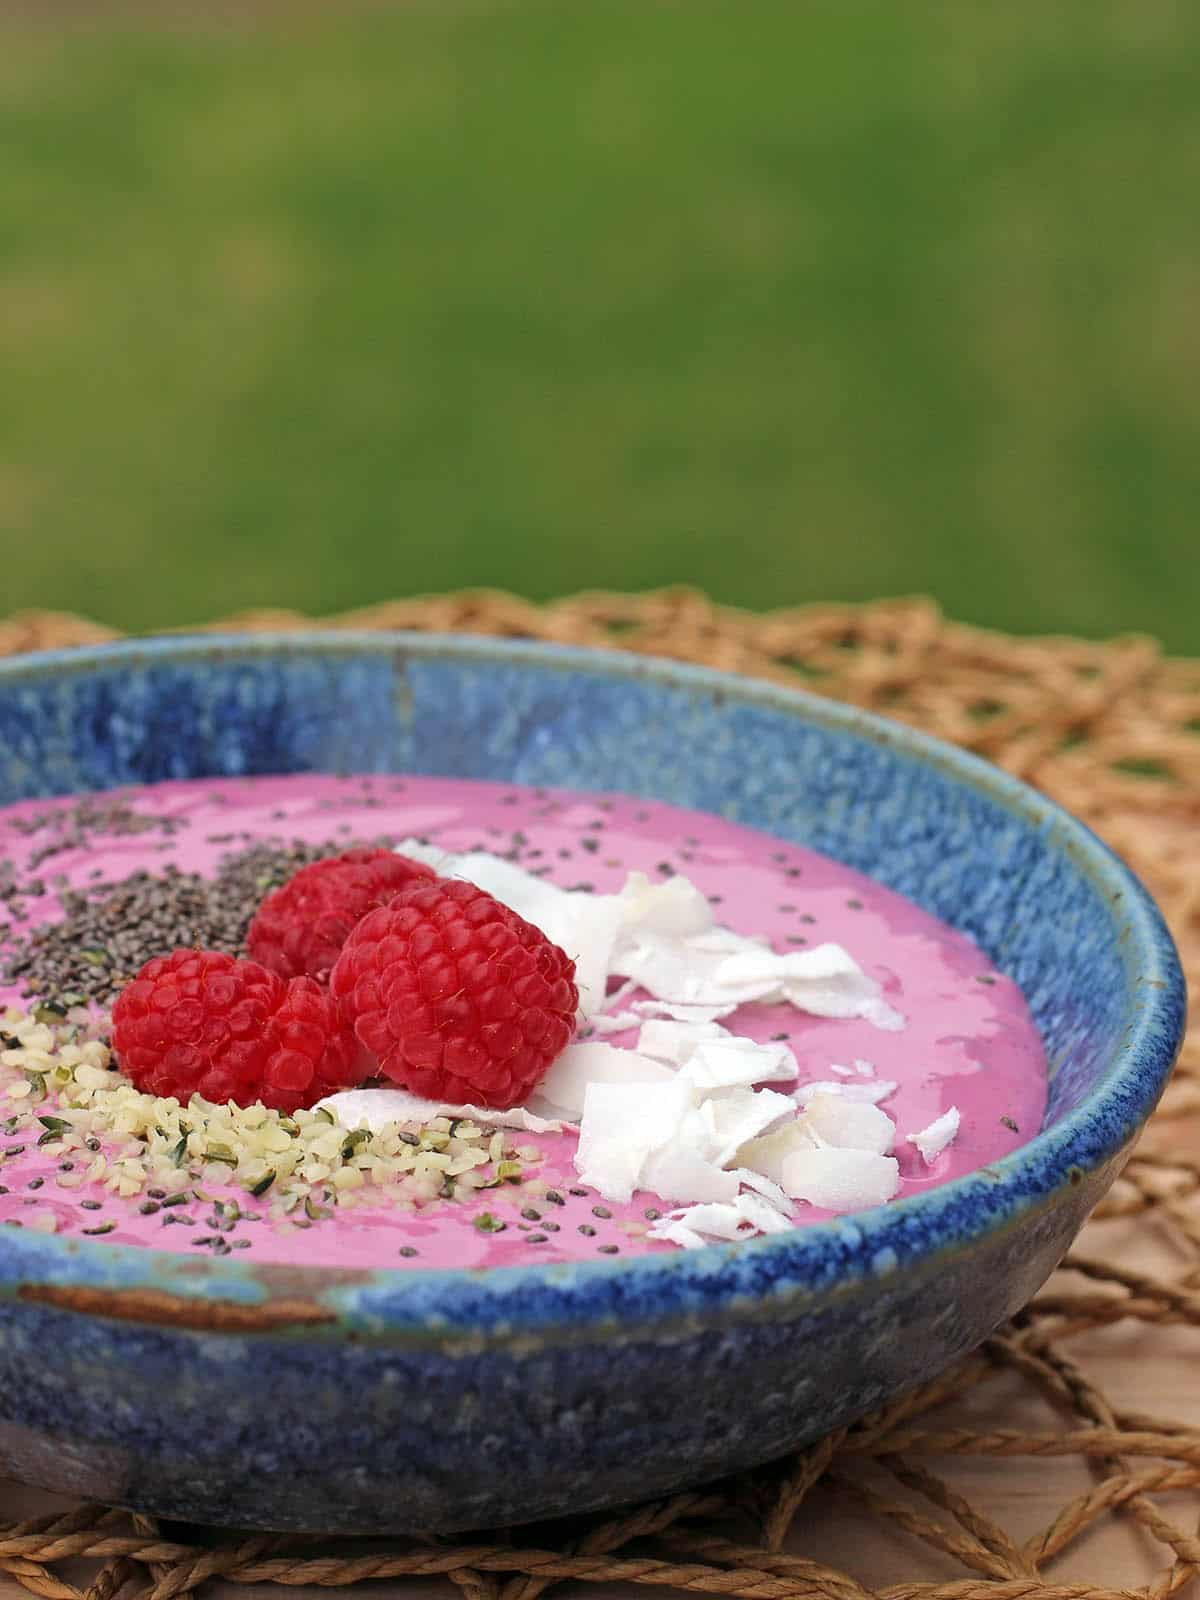 Close-up of the smoothie bowl